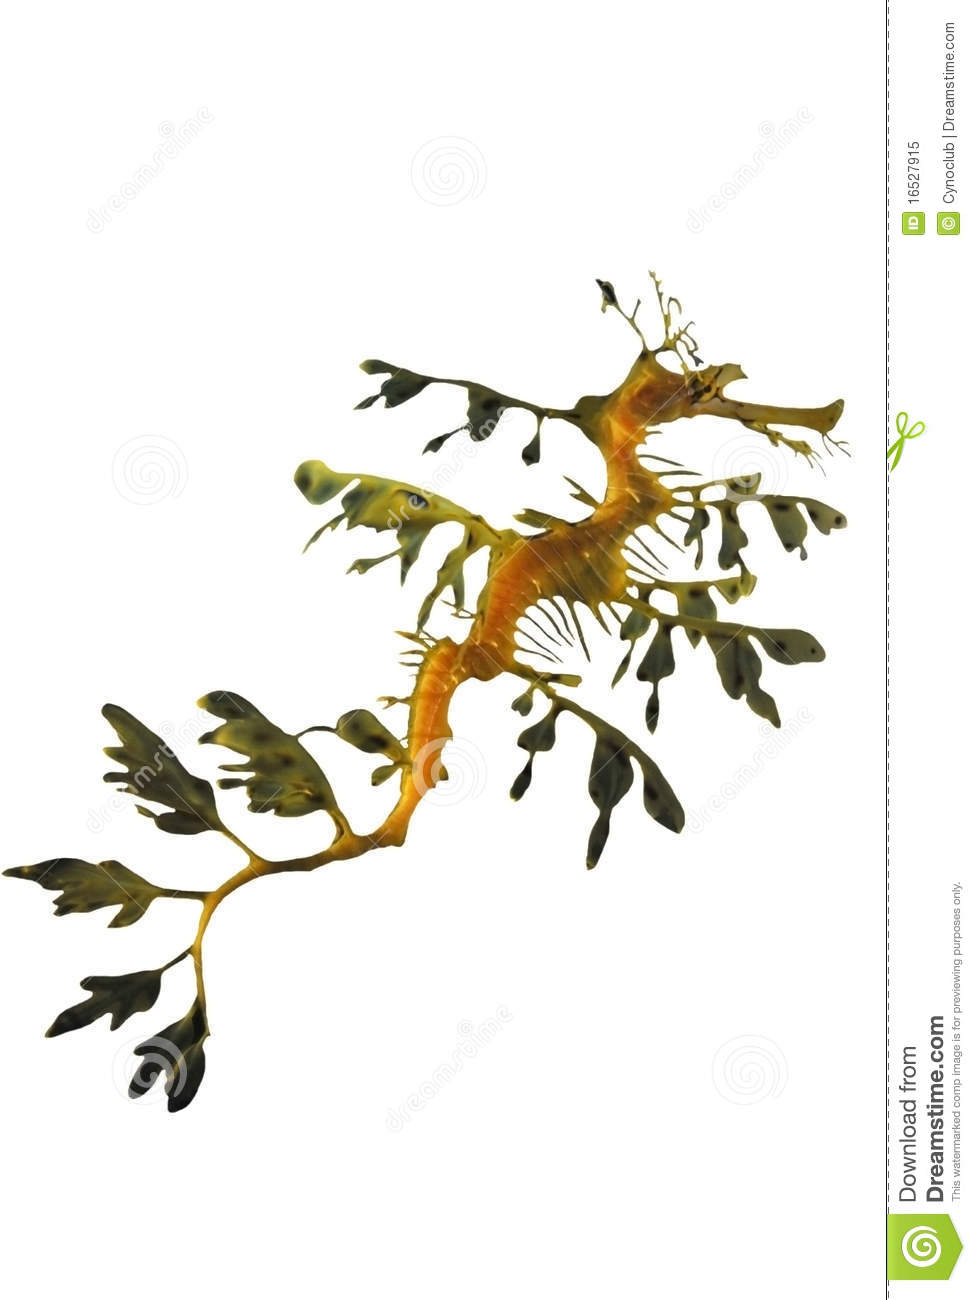 Leafy Seadragon clipart #14, Download drawings